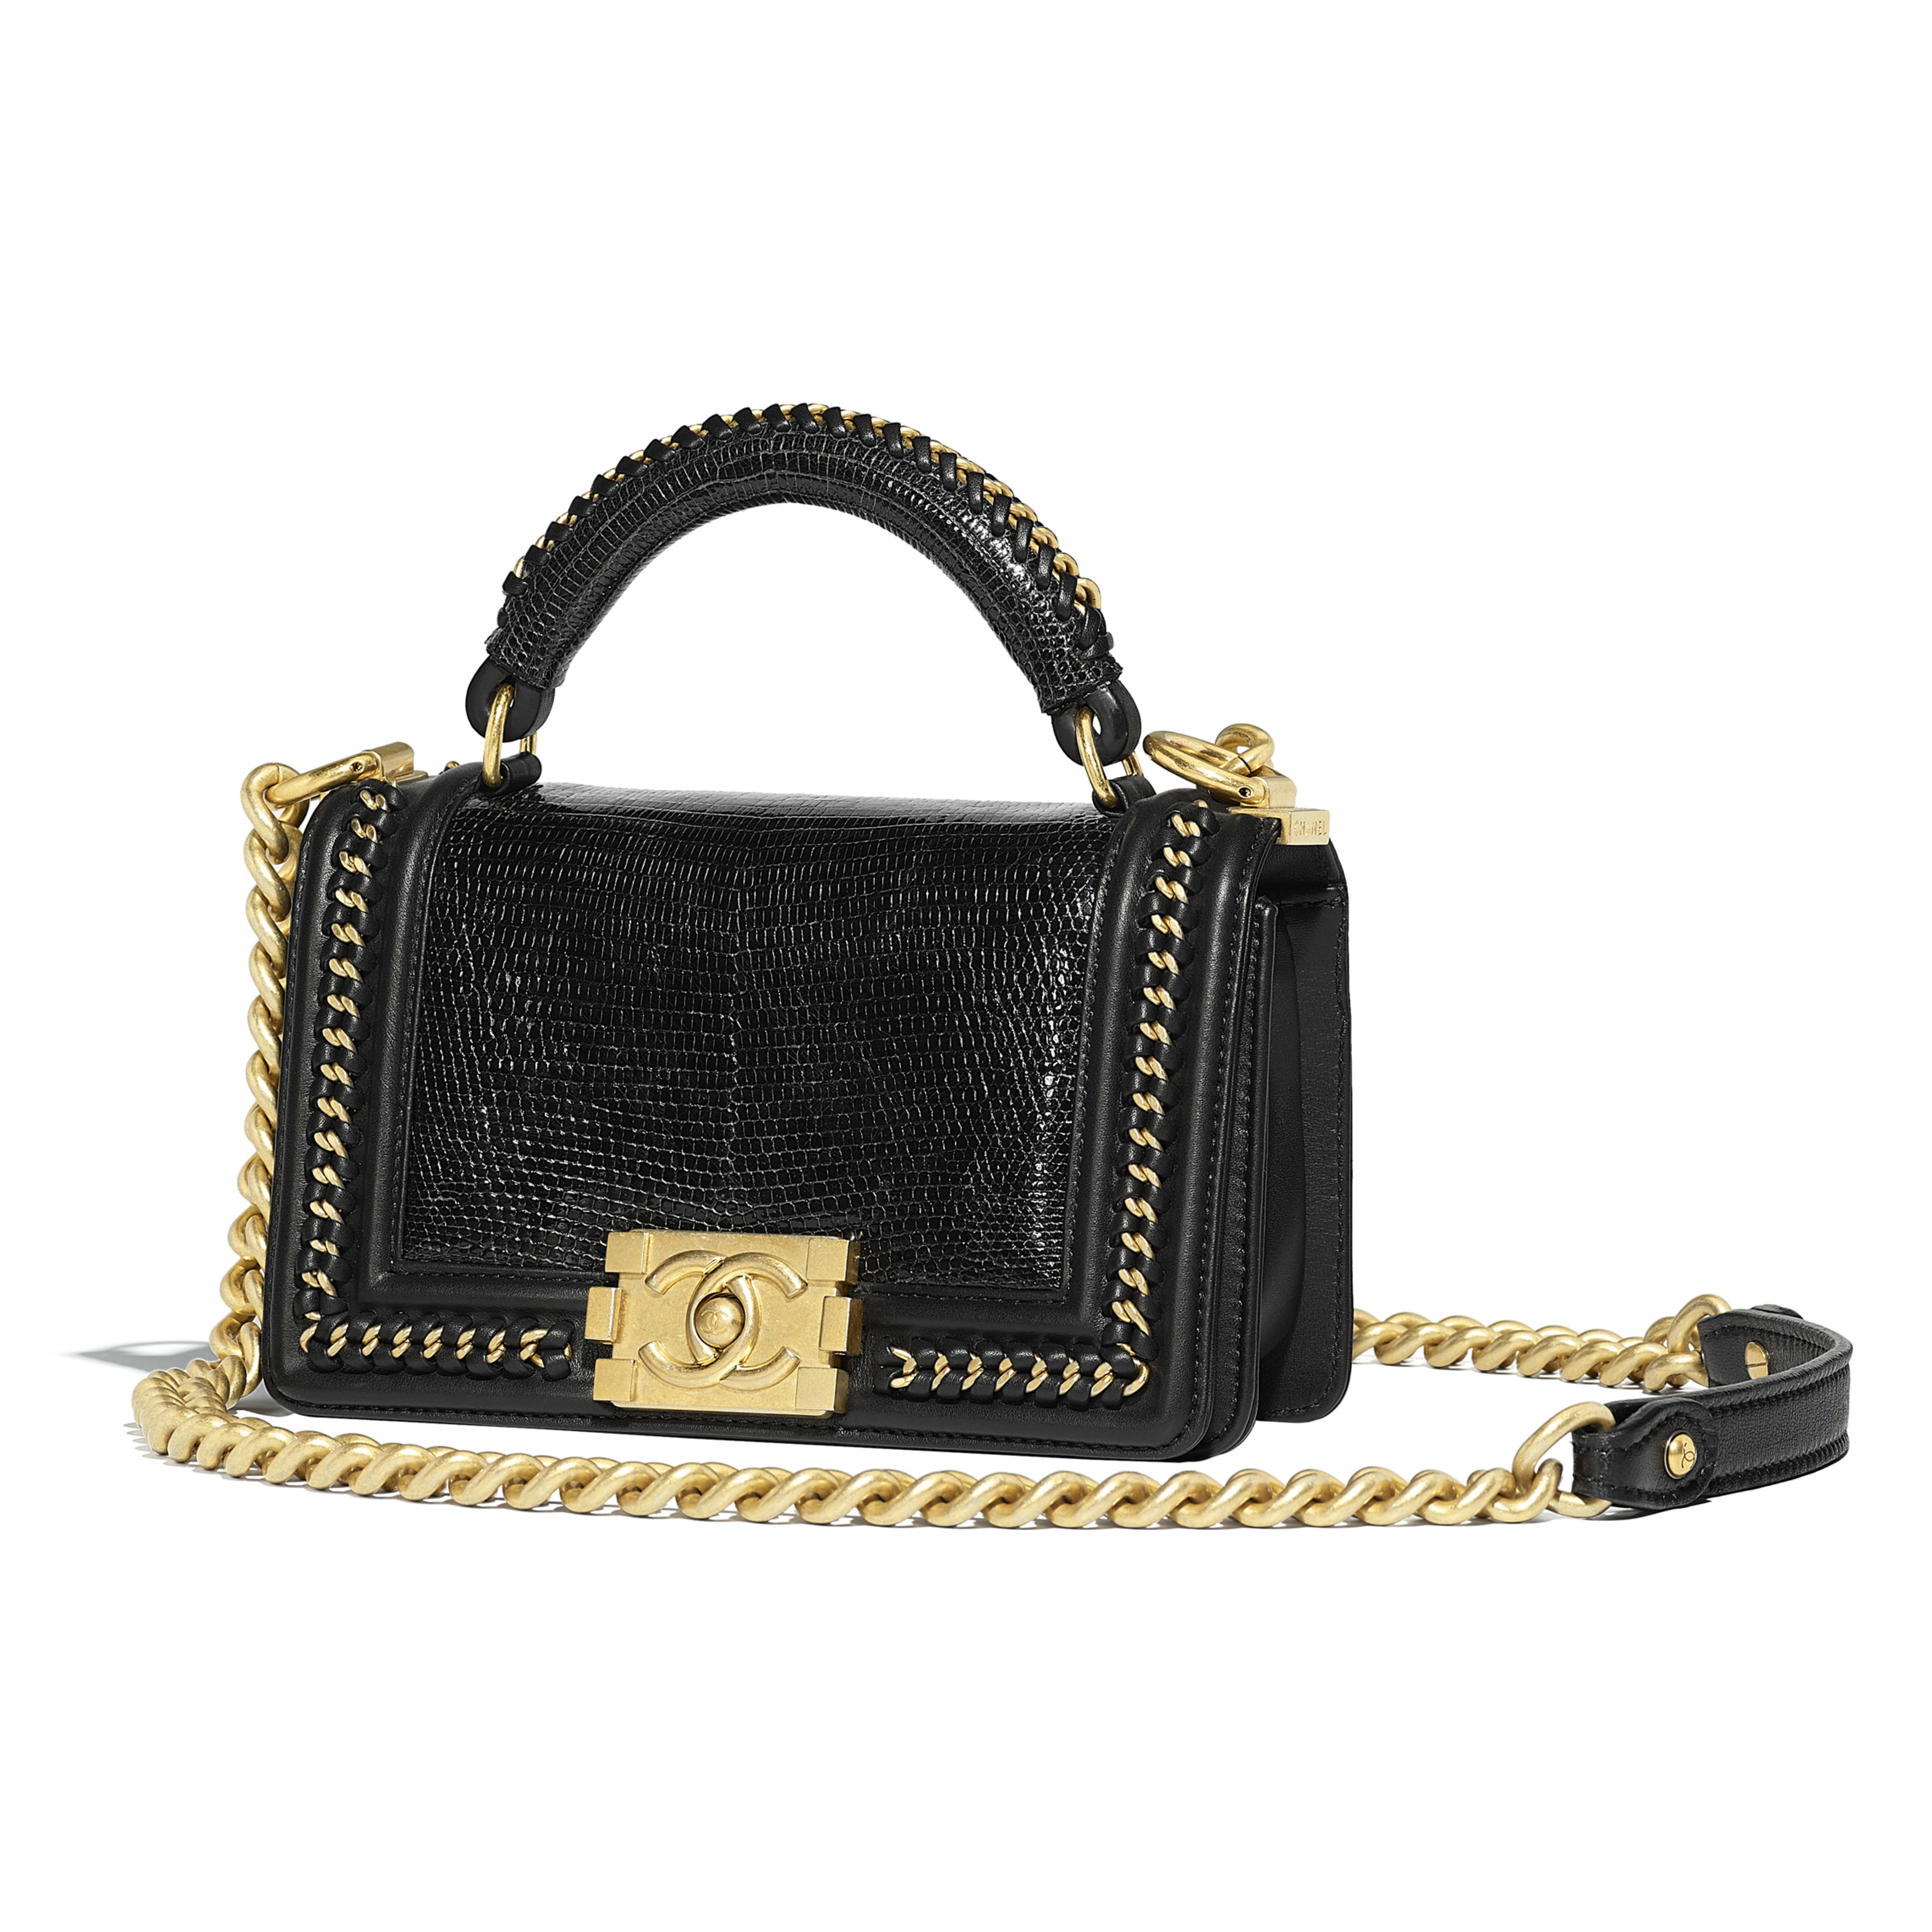 BOY CHANEL Flap Bag with Handle - Black - Lizard, Calfskin & Gold-Tone Metal - Default view - see full sized version